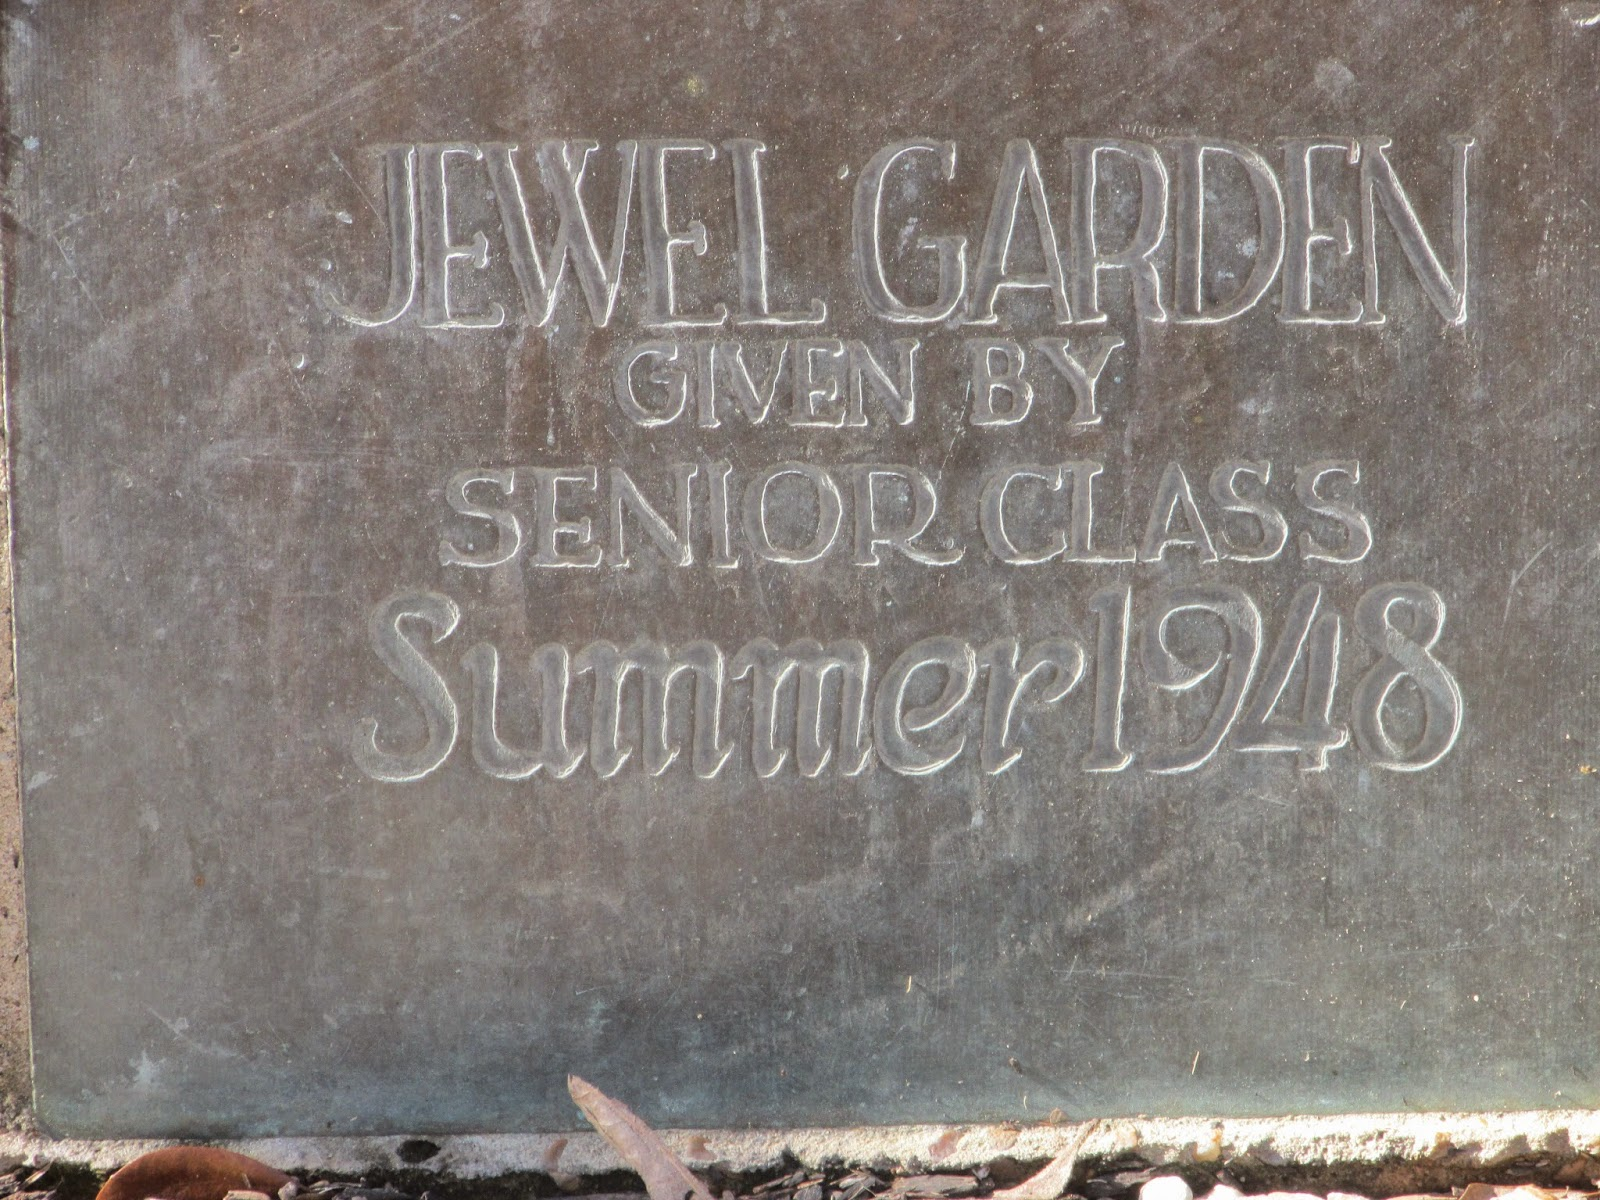 http://www.buildingshsu.com/j/jewel_garden/index.html